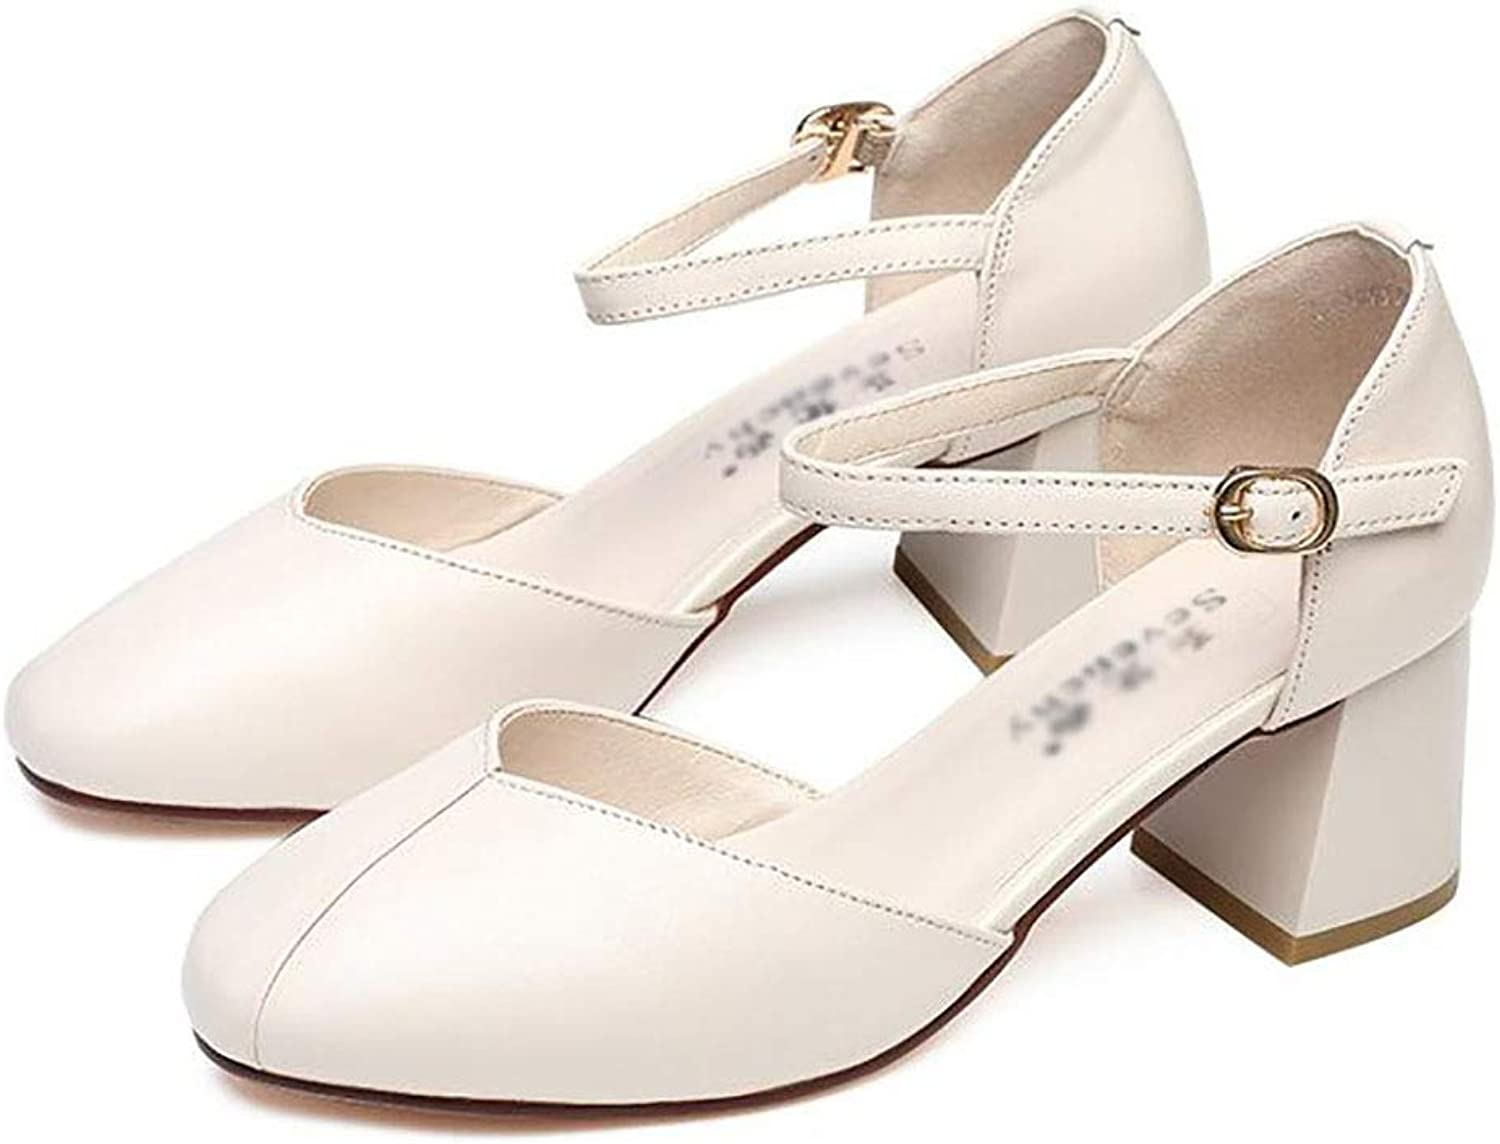 Women's shoes, one-Button shoes, Thick Heel, mid-Heel shoes (color   B, Size   40)